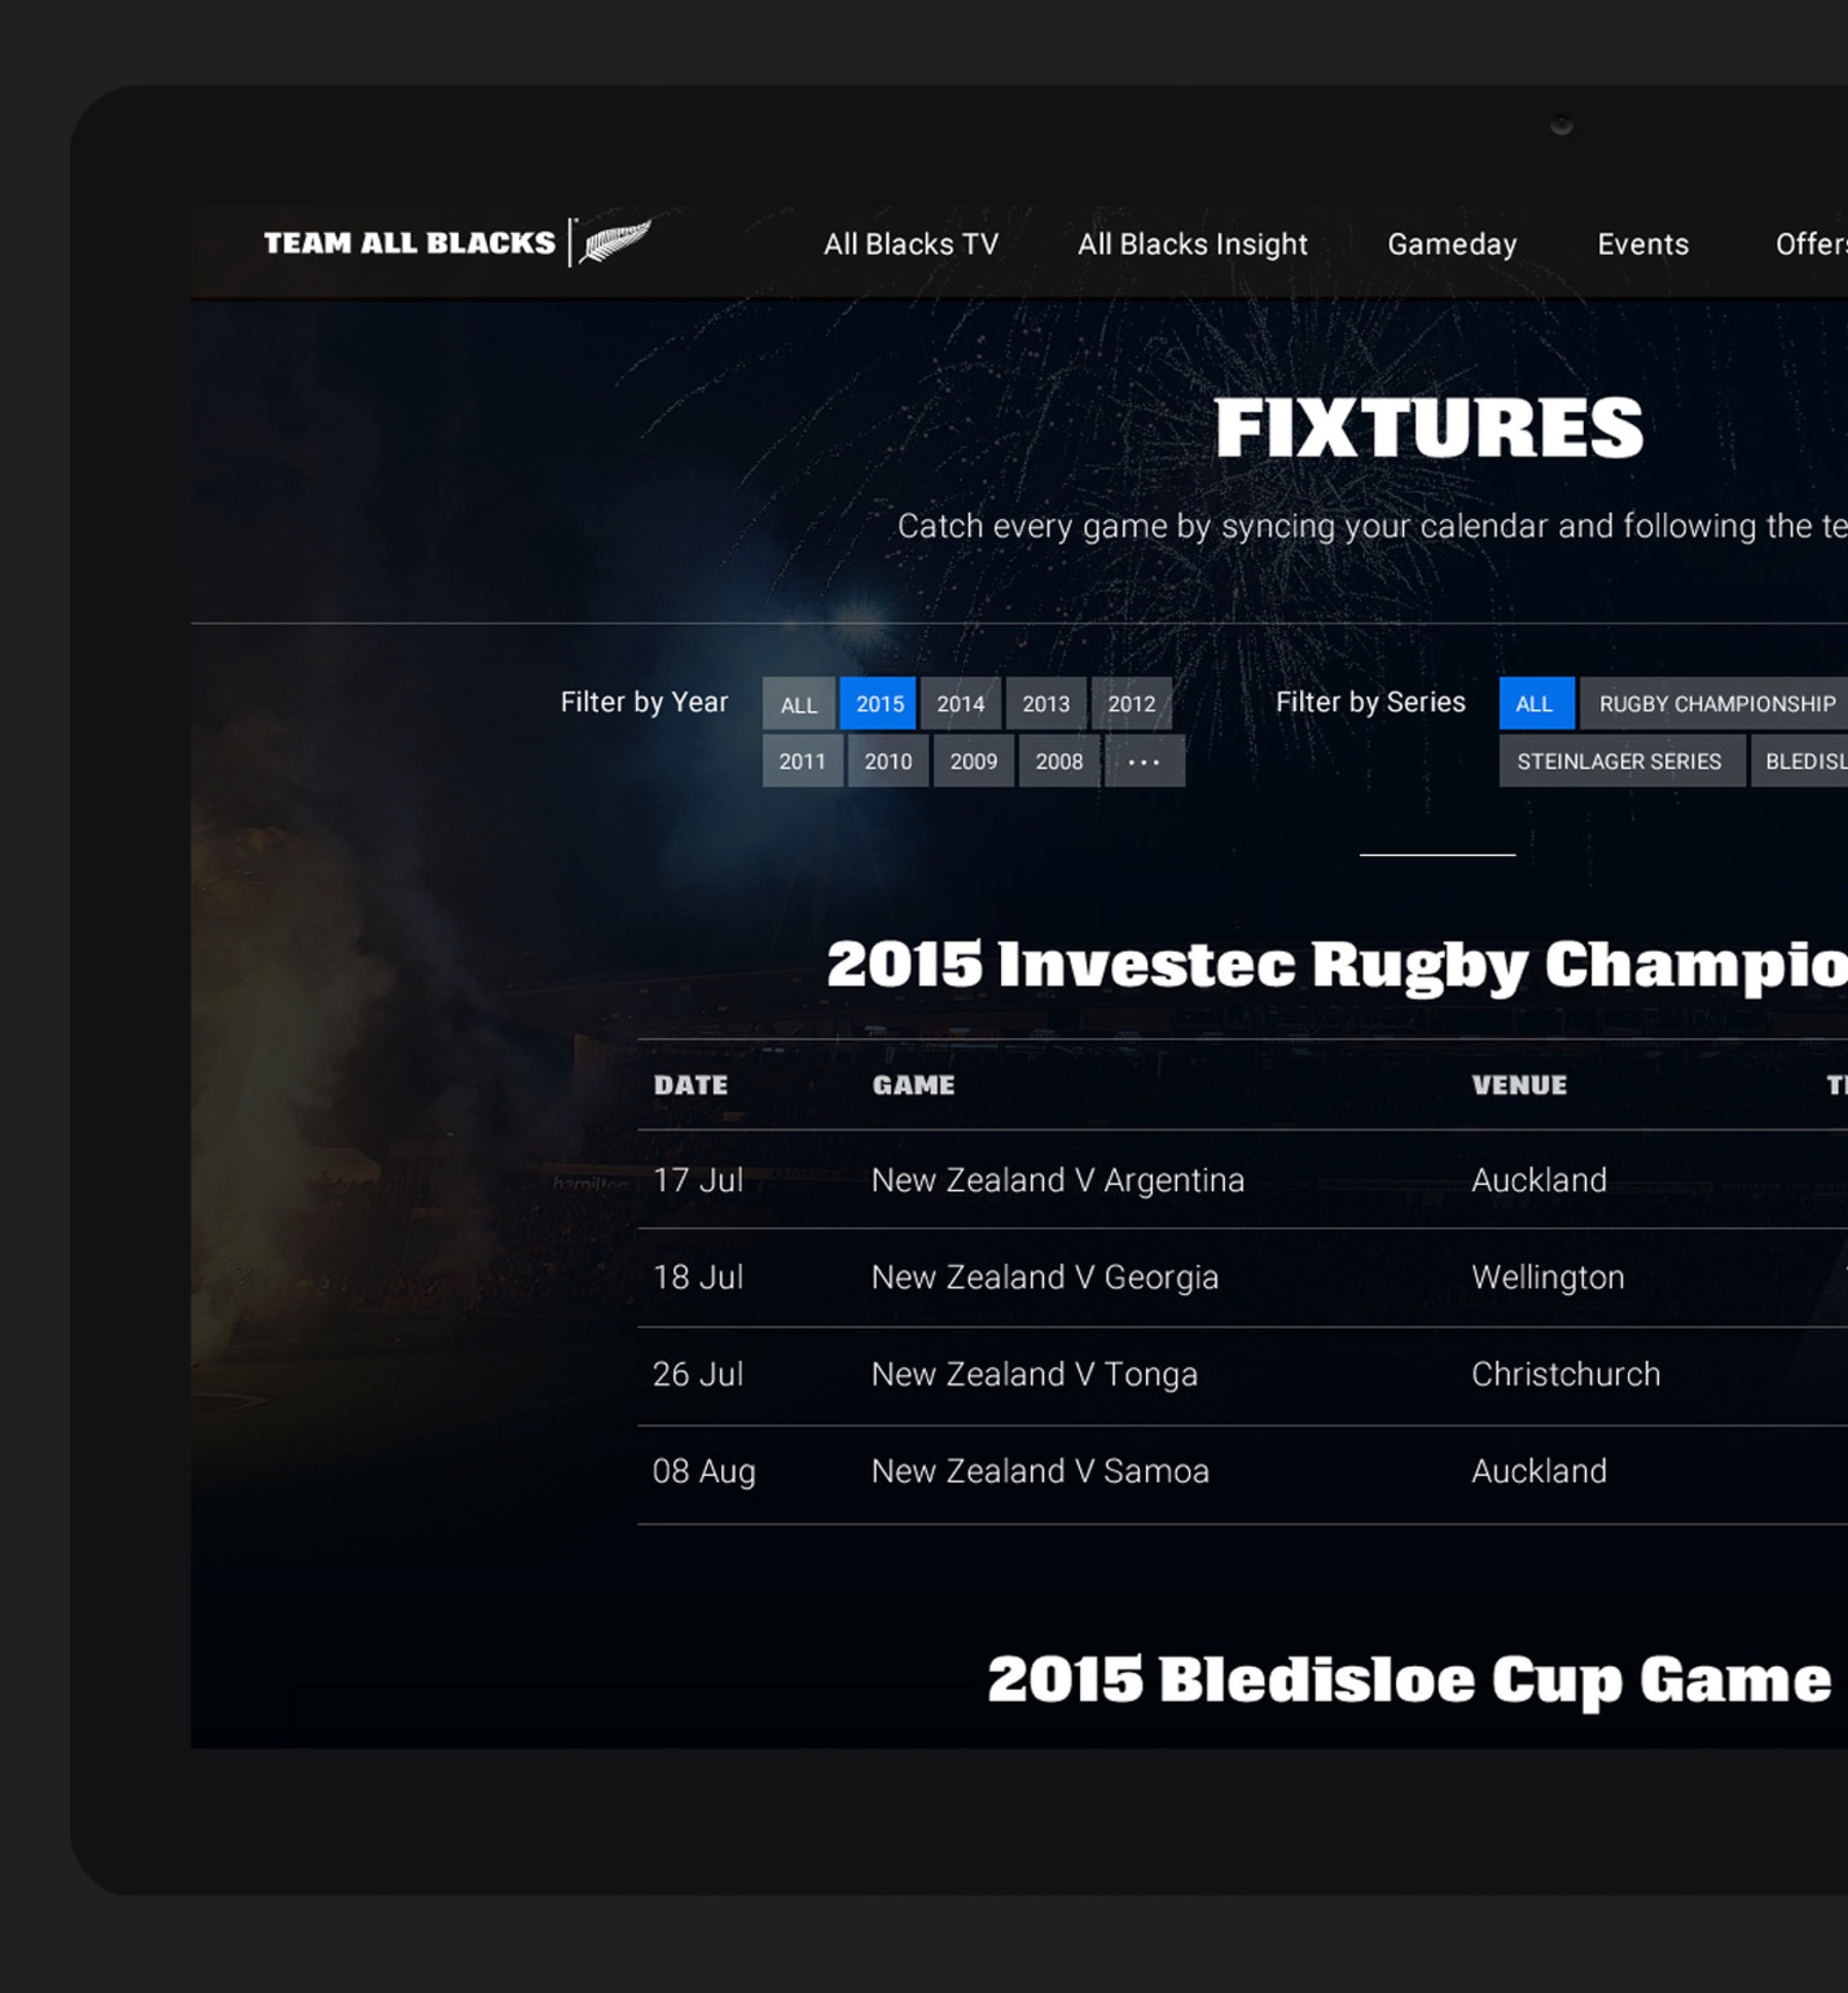 Team All Blacks Fixtures